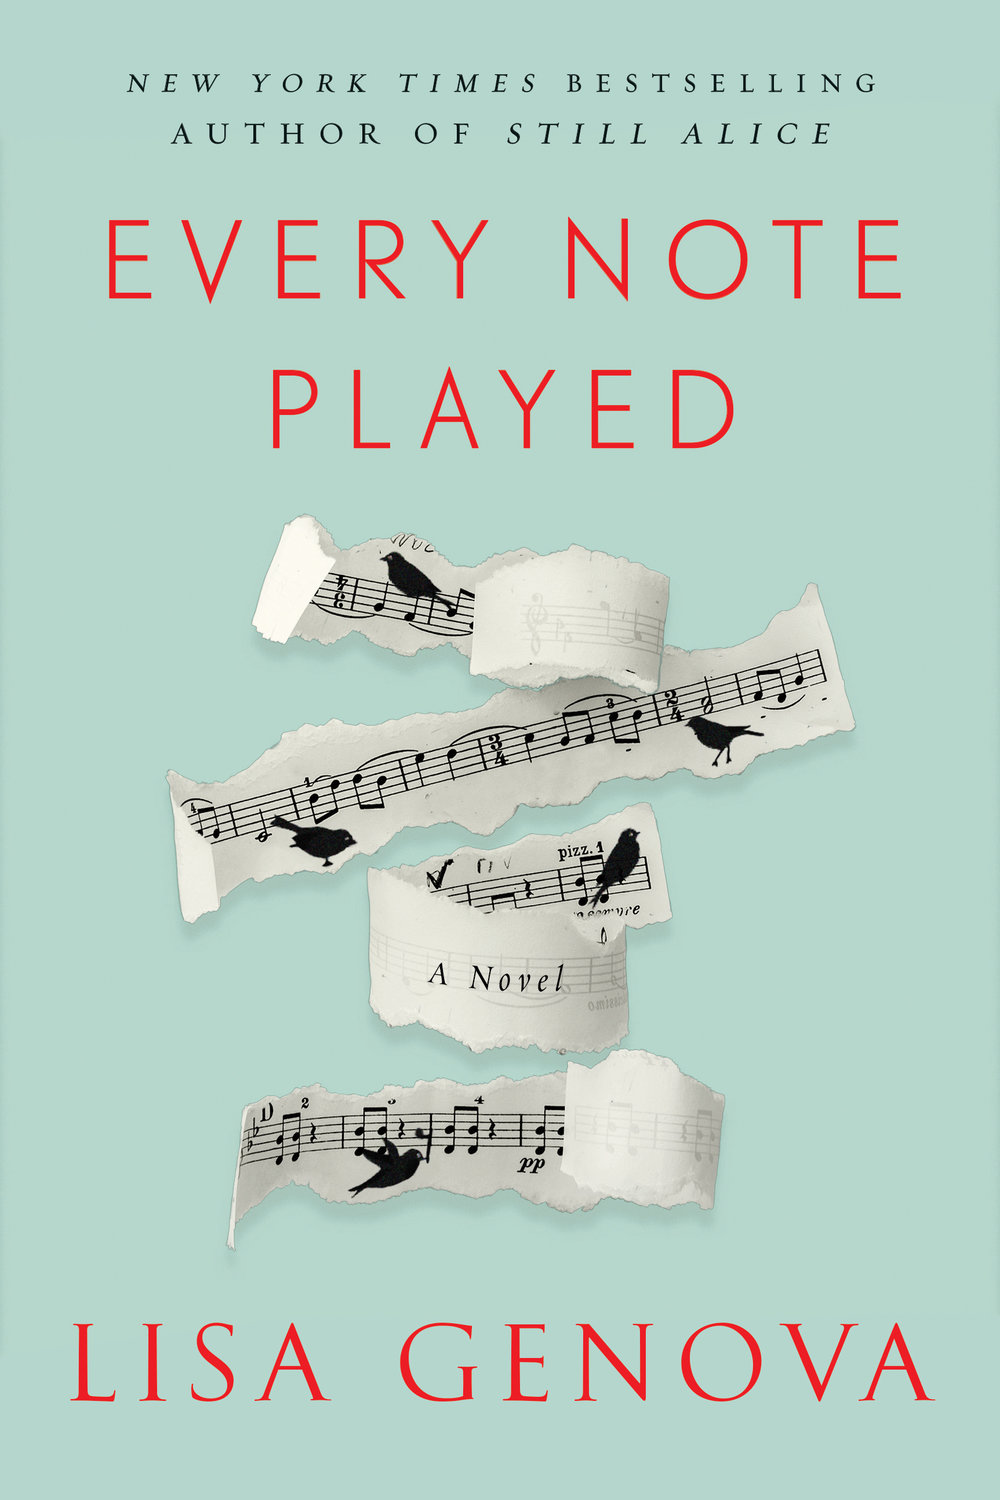 Cover Image - EVERY NOTE PLAYED.jpg